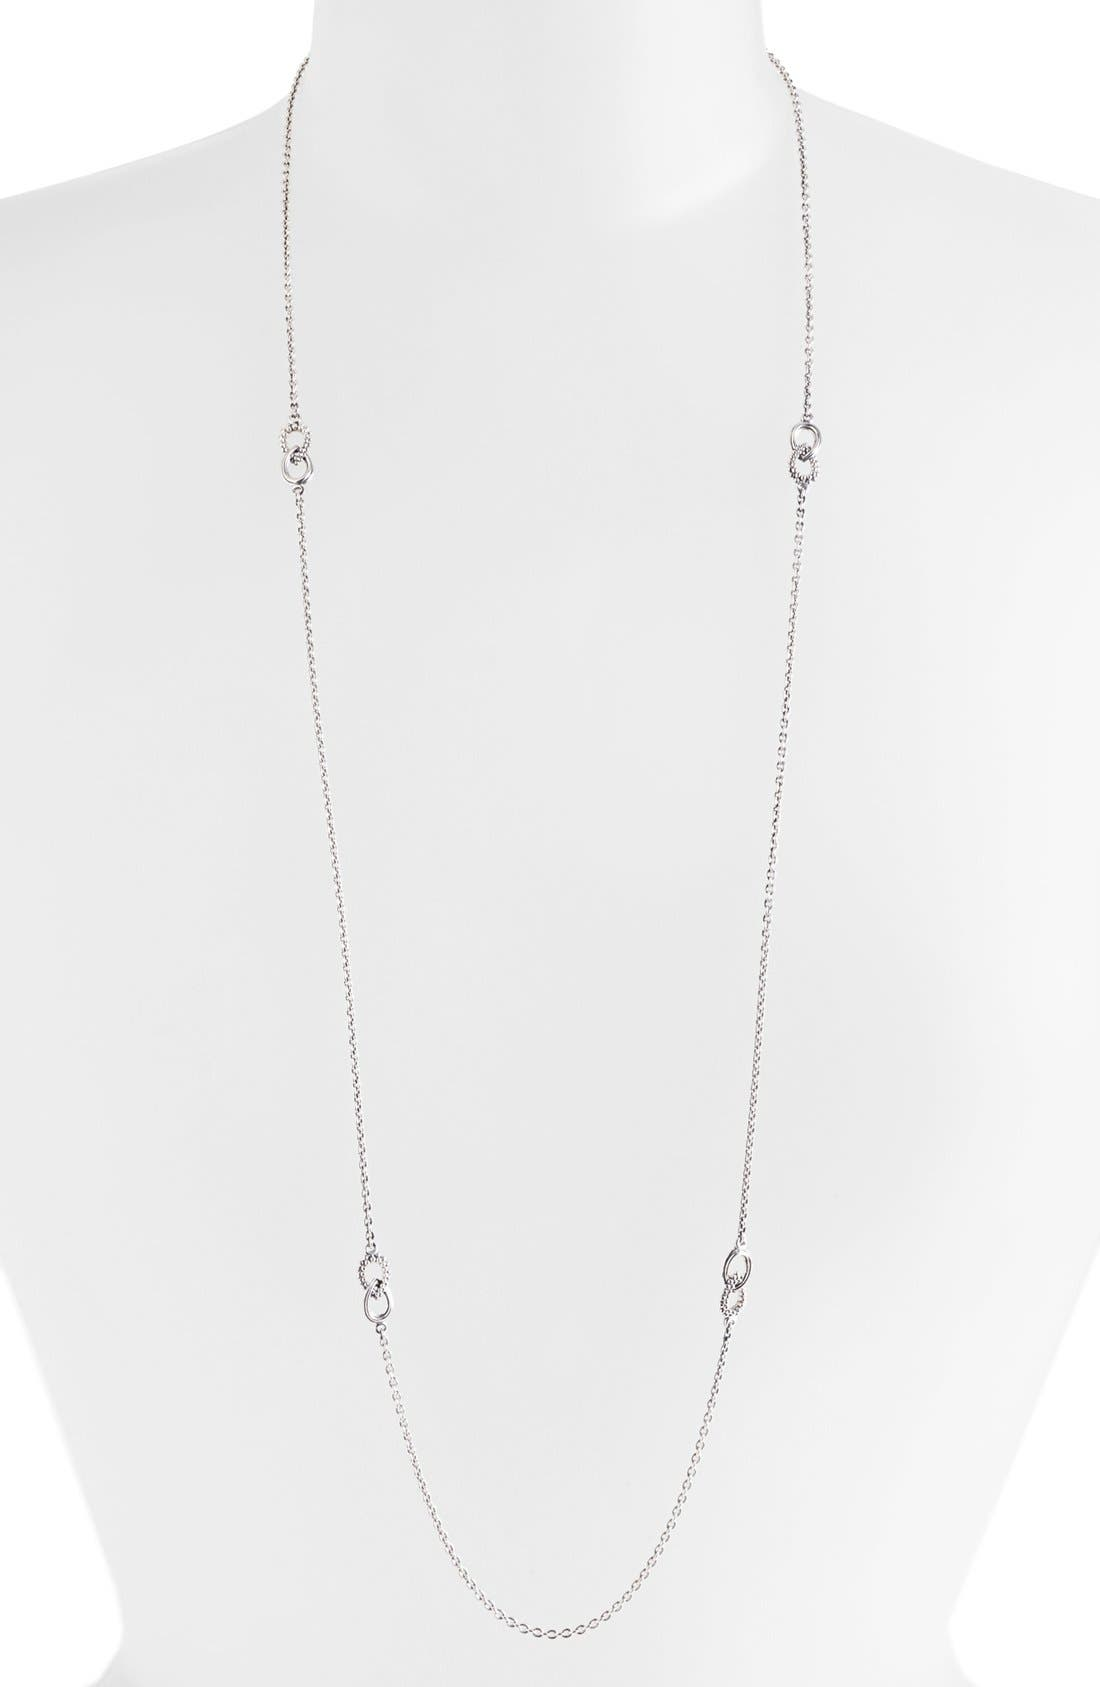 LAGOS 'Soiree' Long Station Necklace